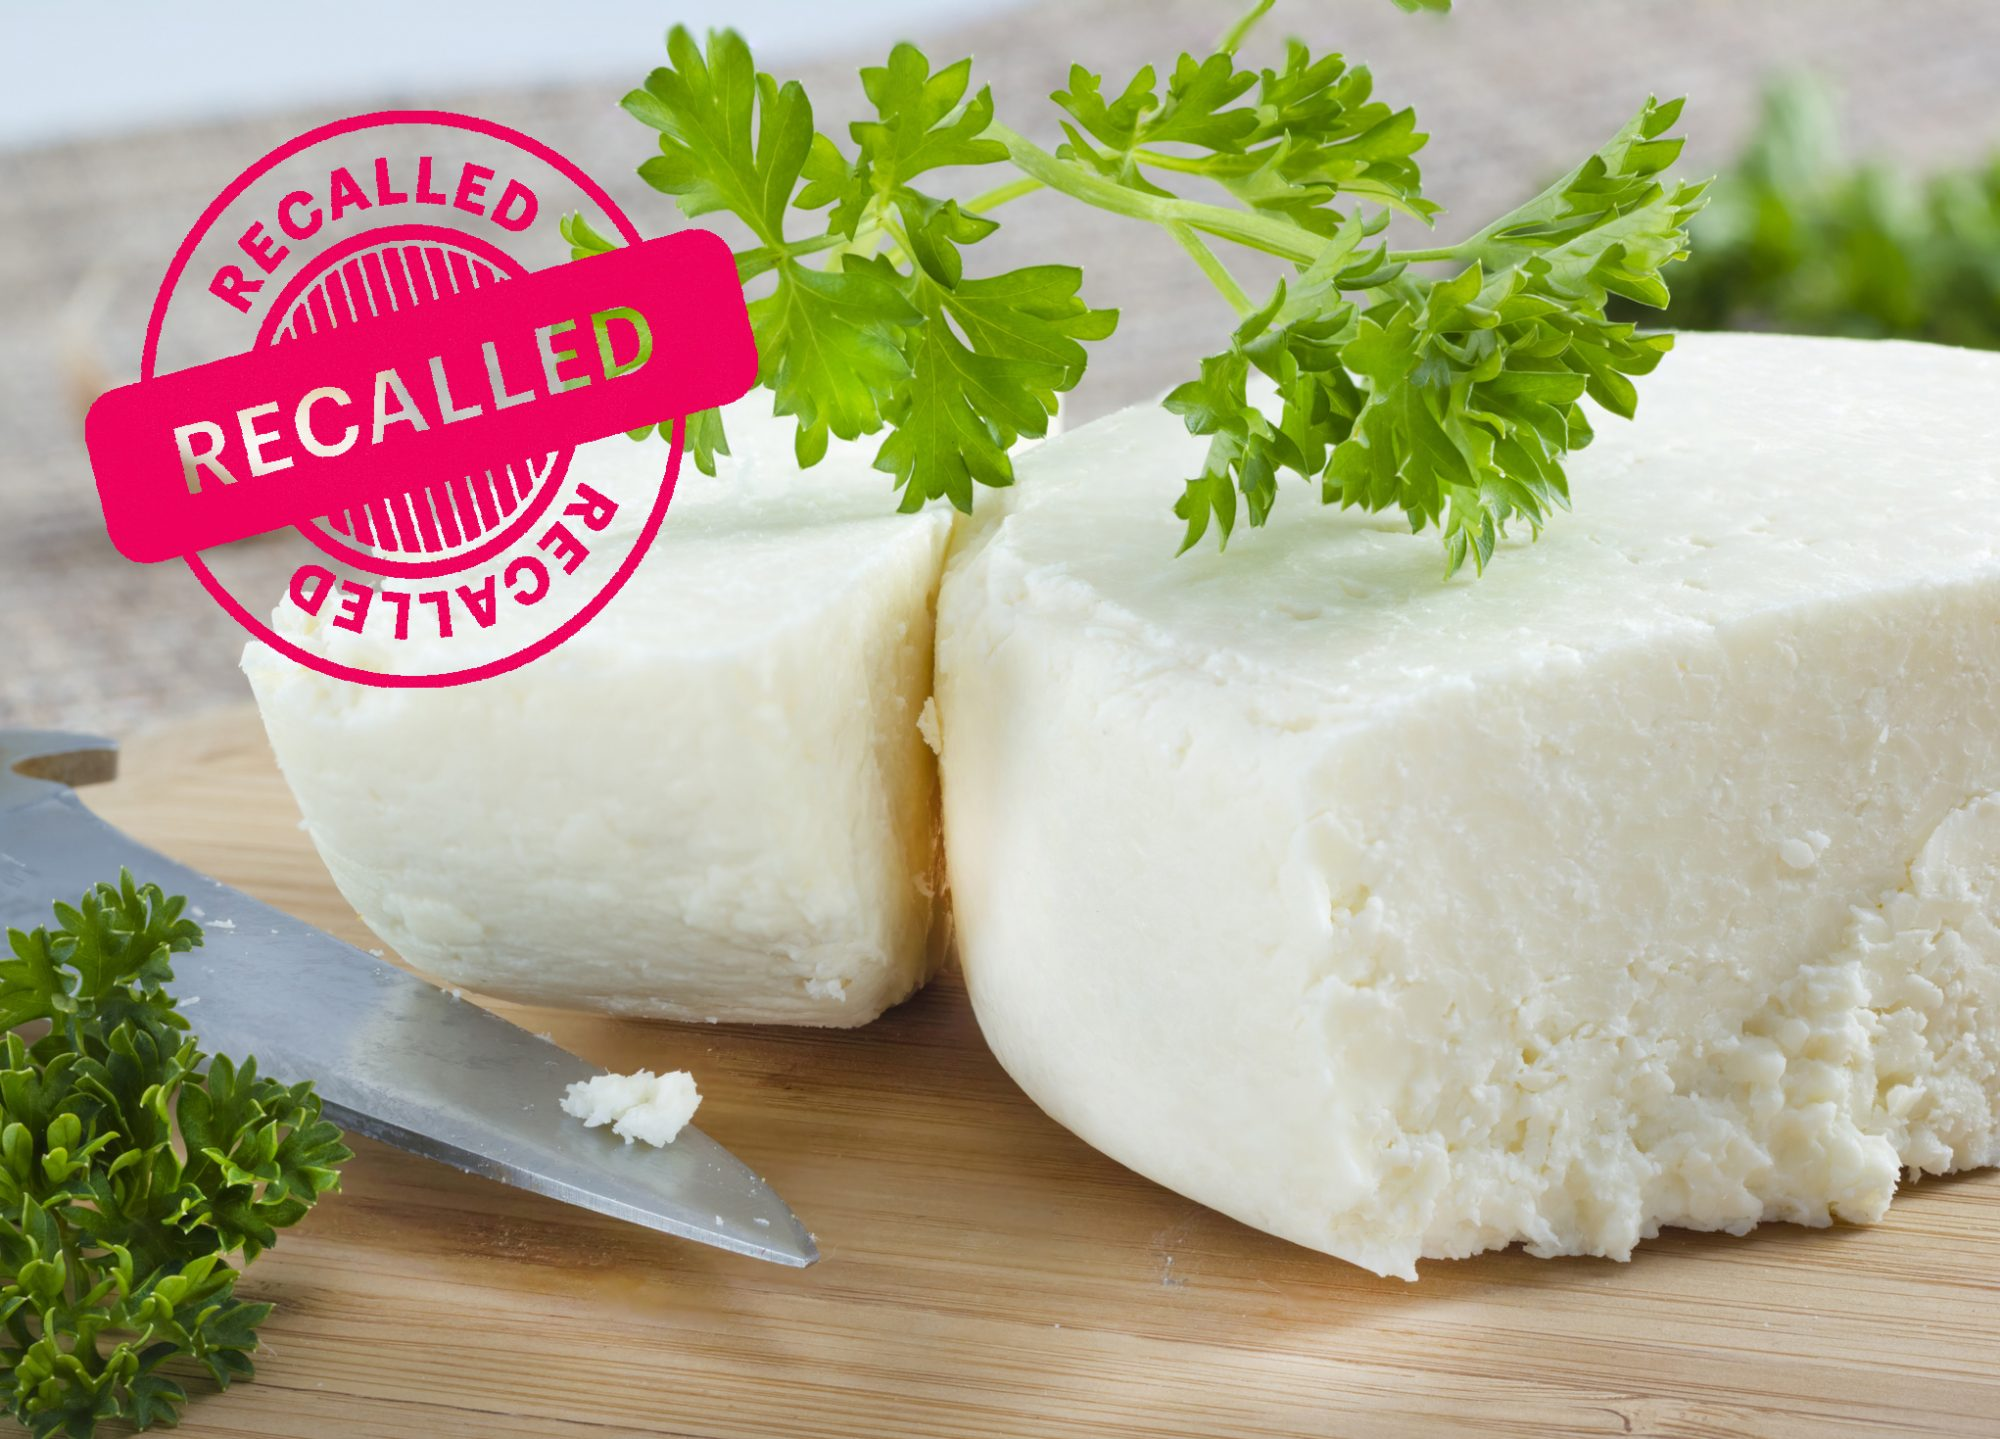 RECALL-Cotija cheese with cilantro on cutting board